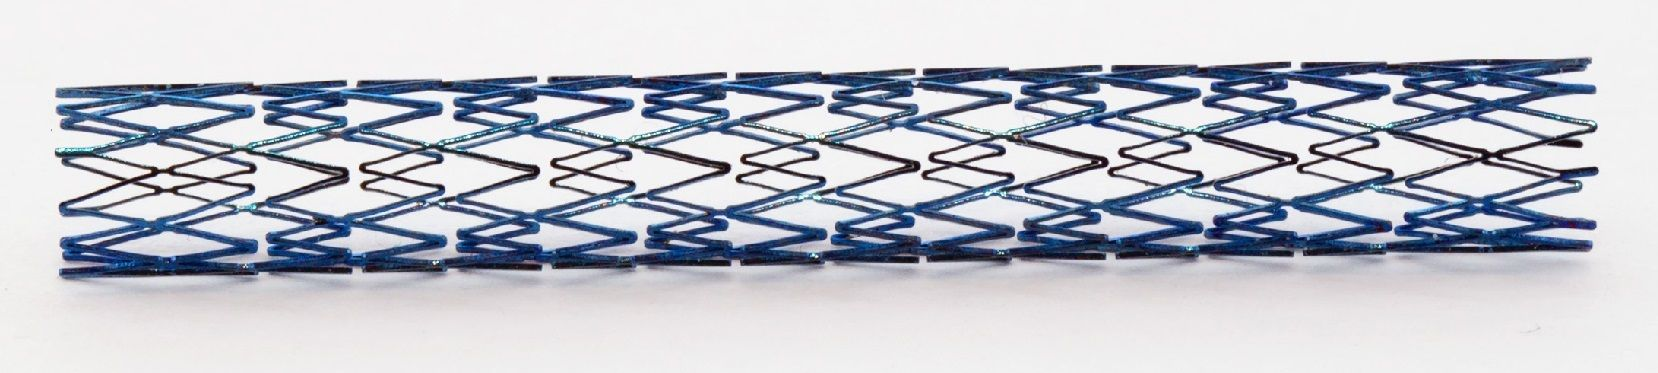 another example stent pattern